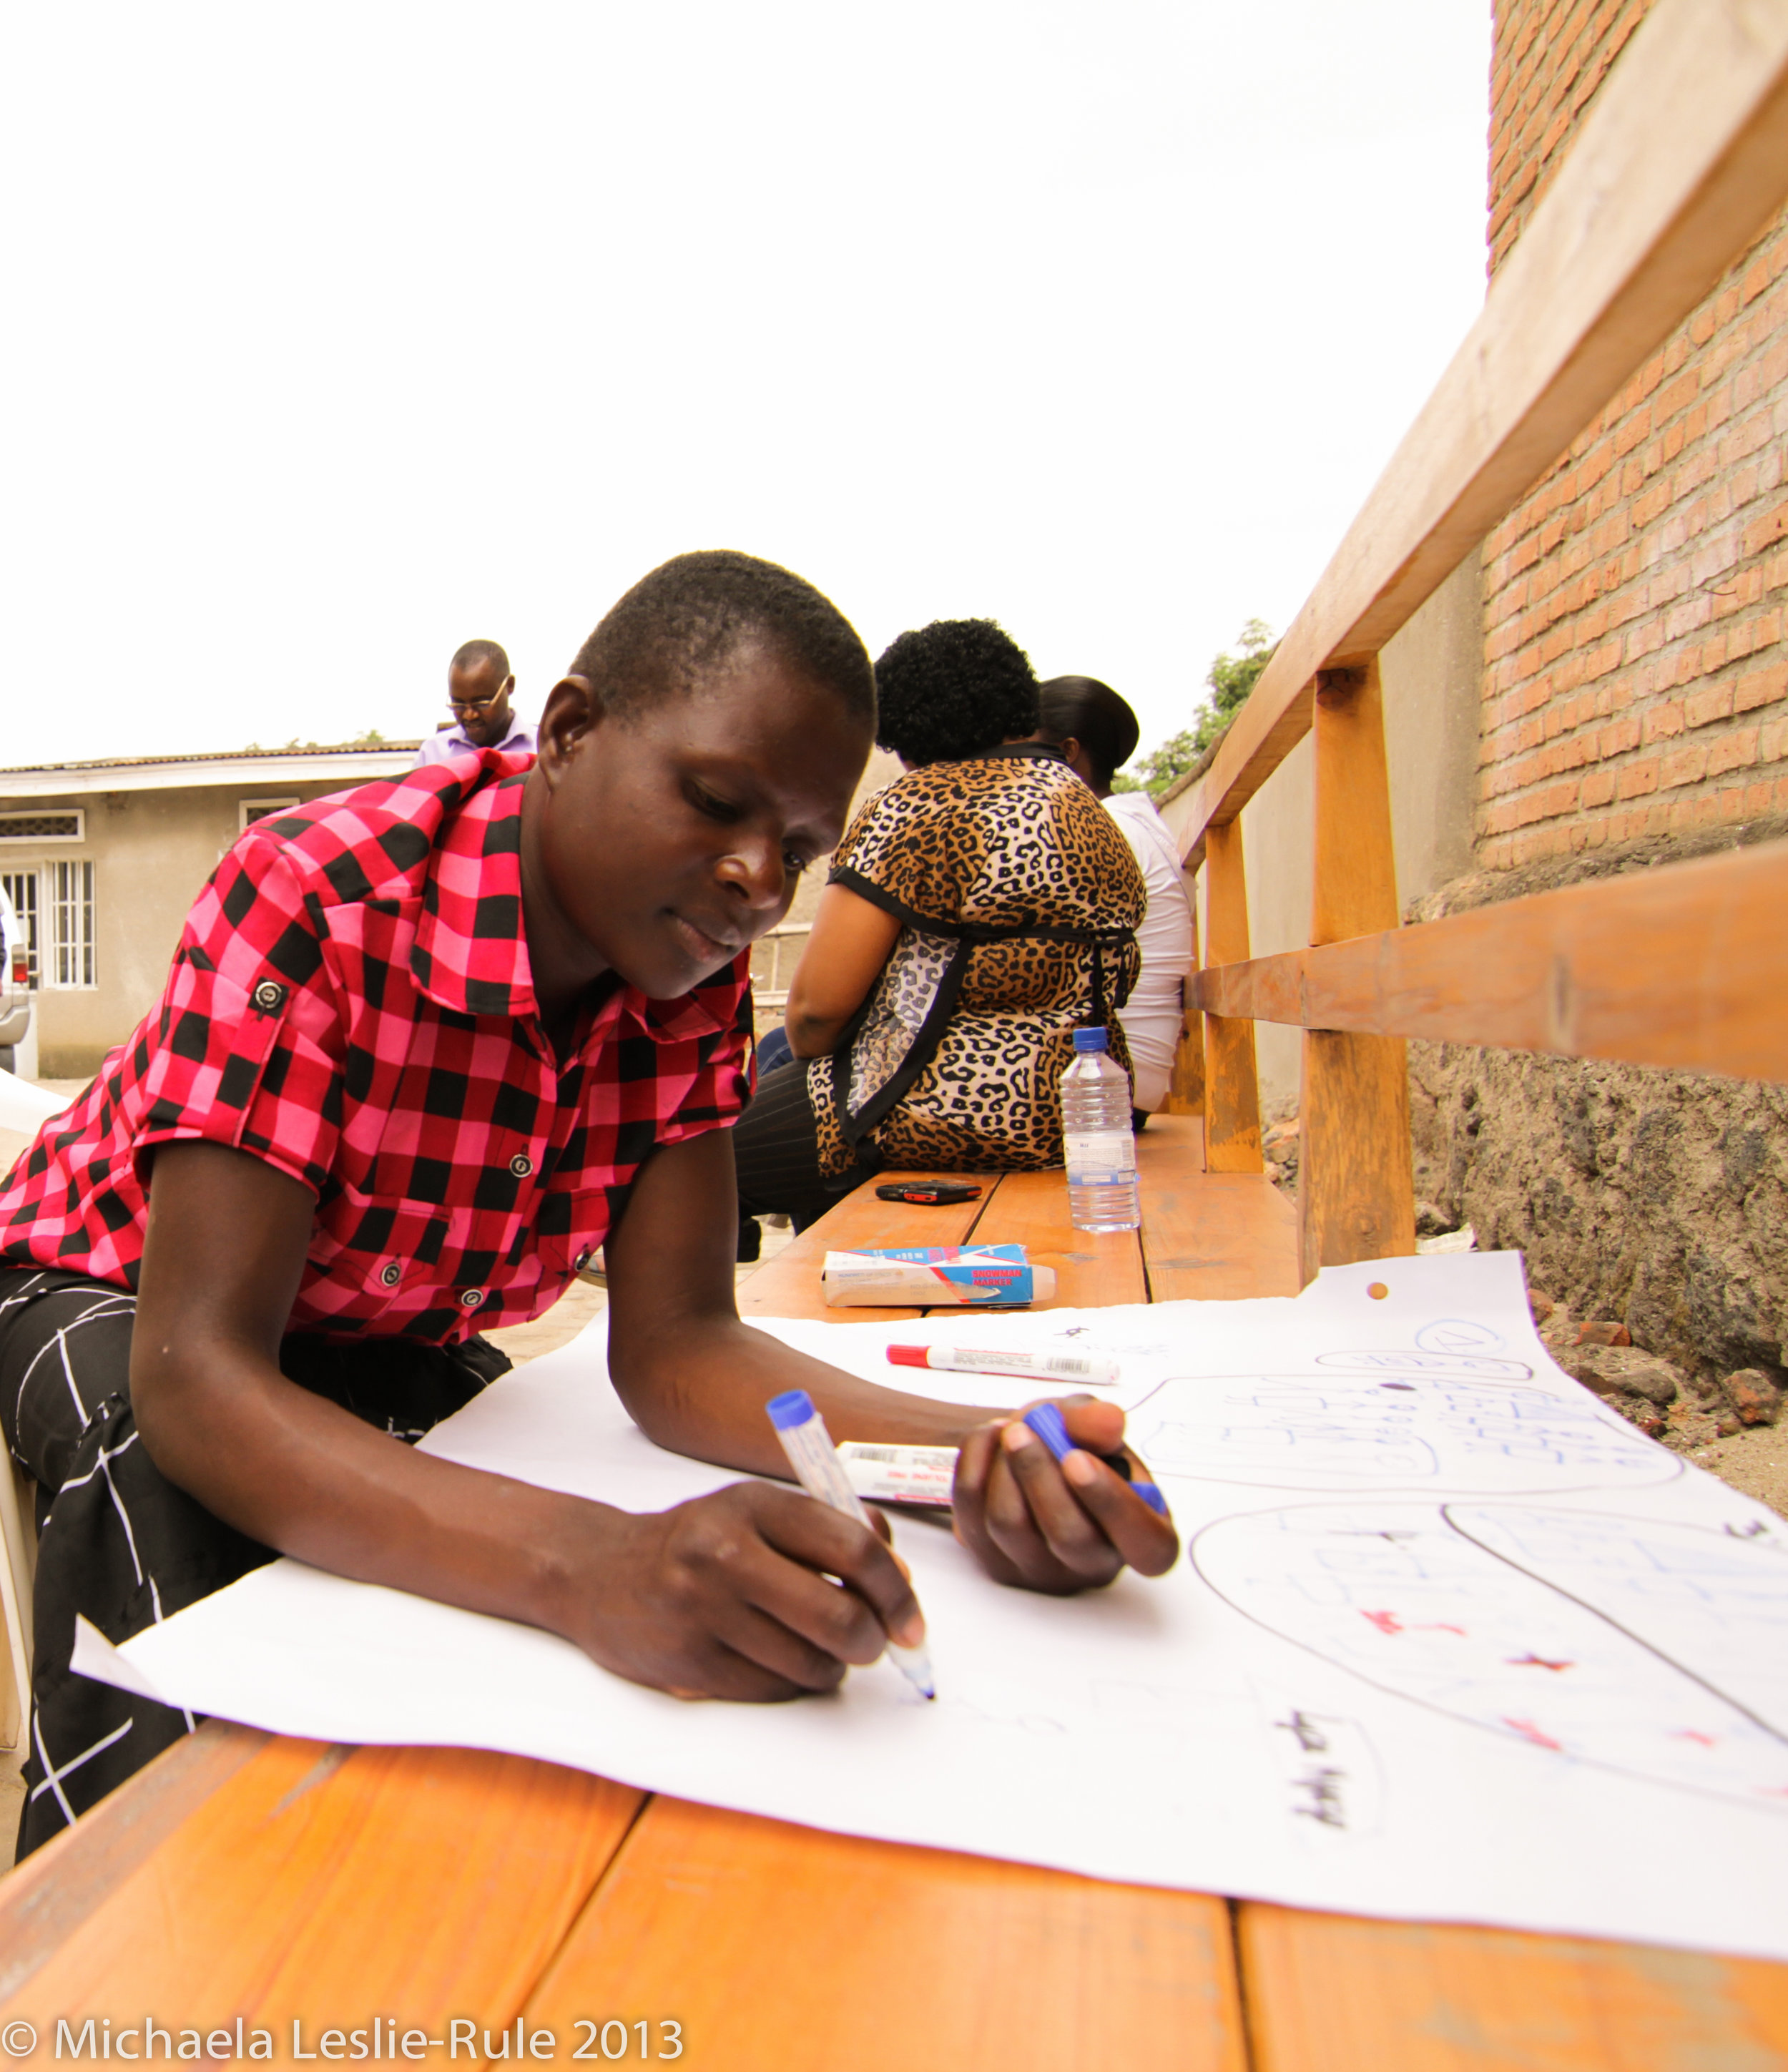 An African girl wearing a red and black checkered shirt writes on a large sheet of paper